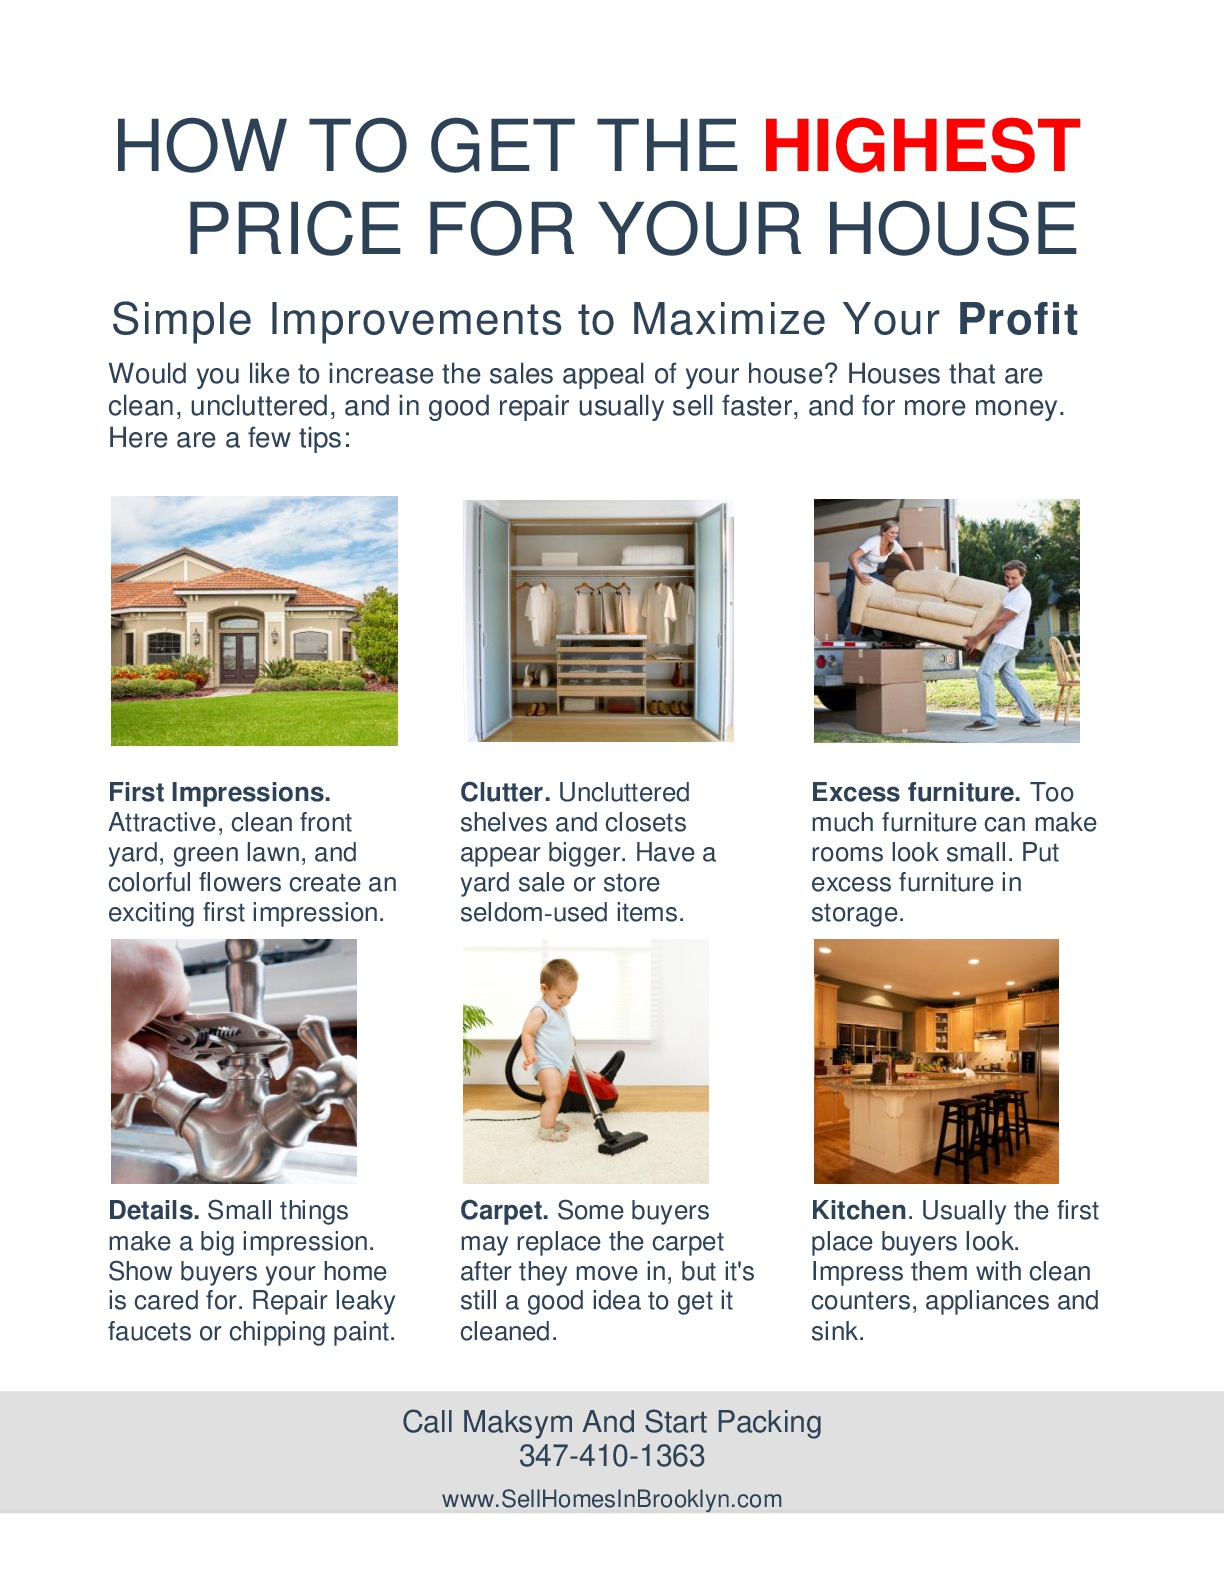 Sell your home in Brooklyn In 90 Days Part 2